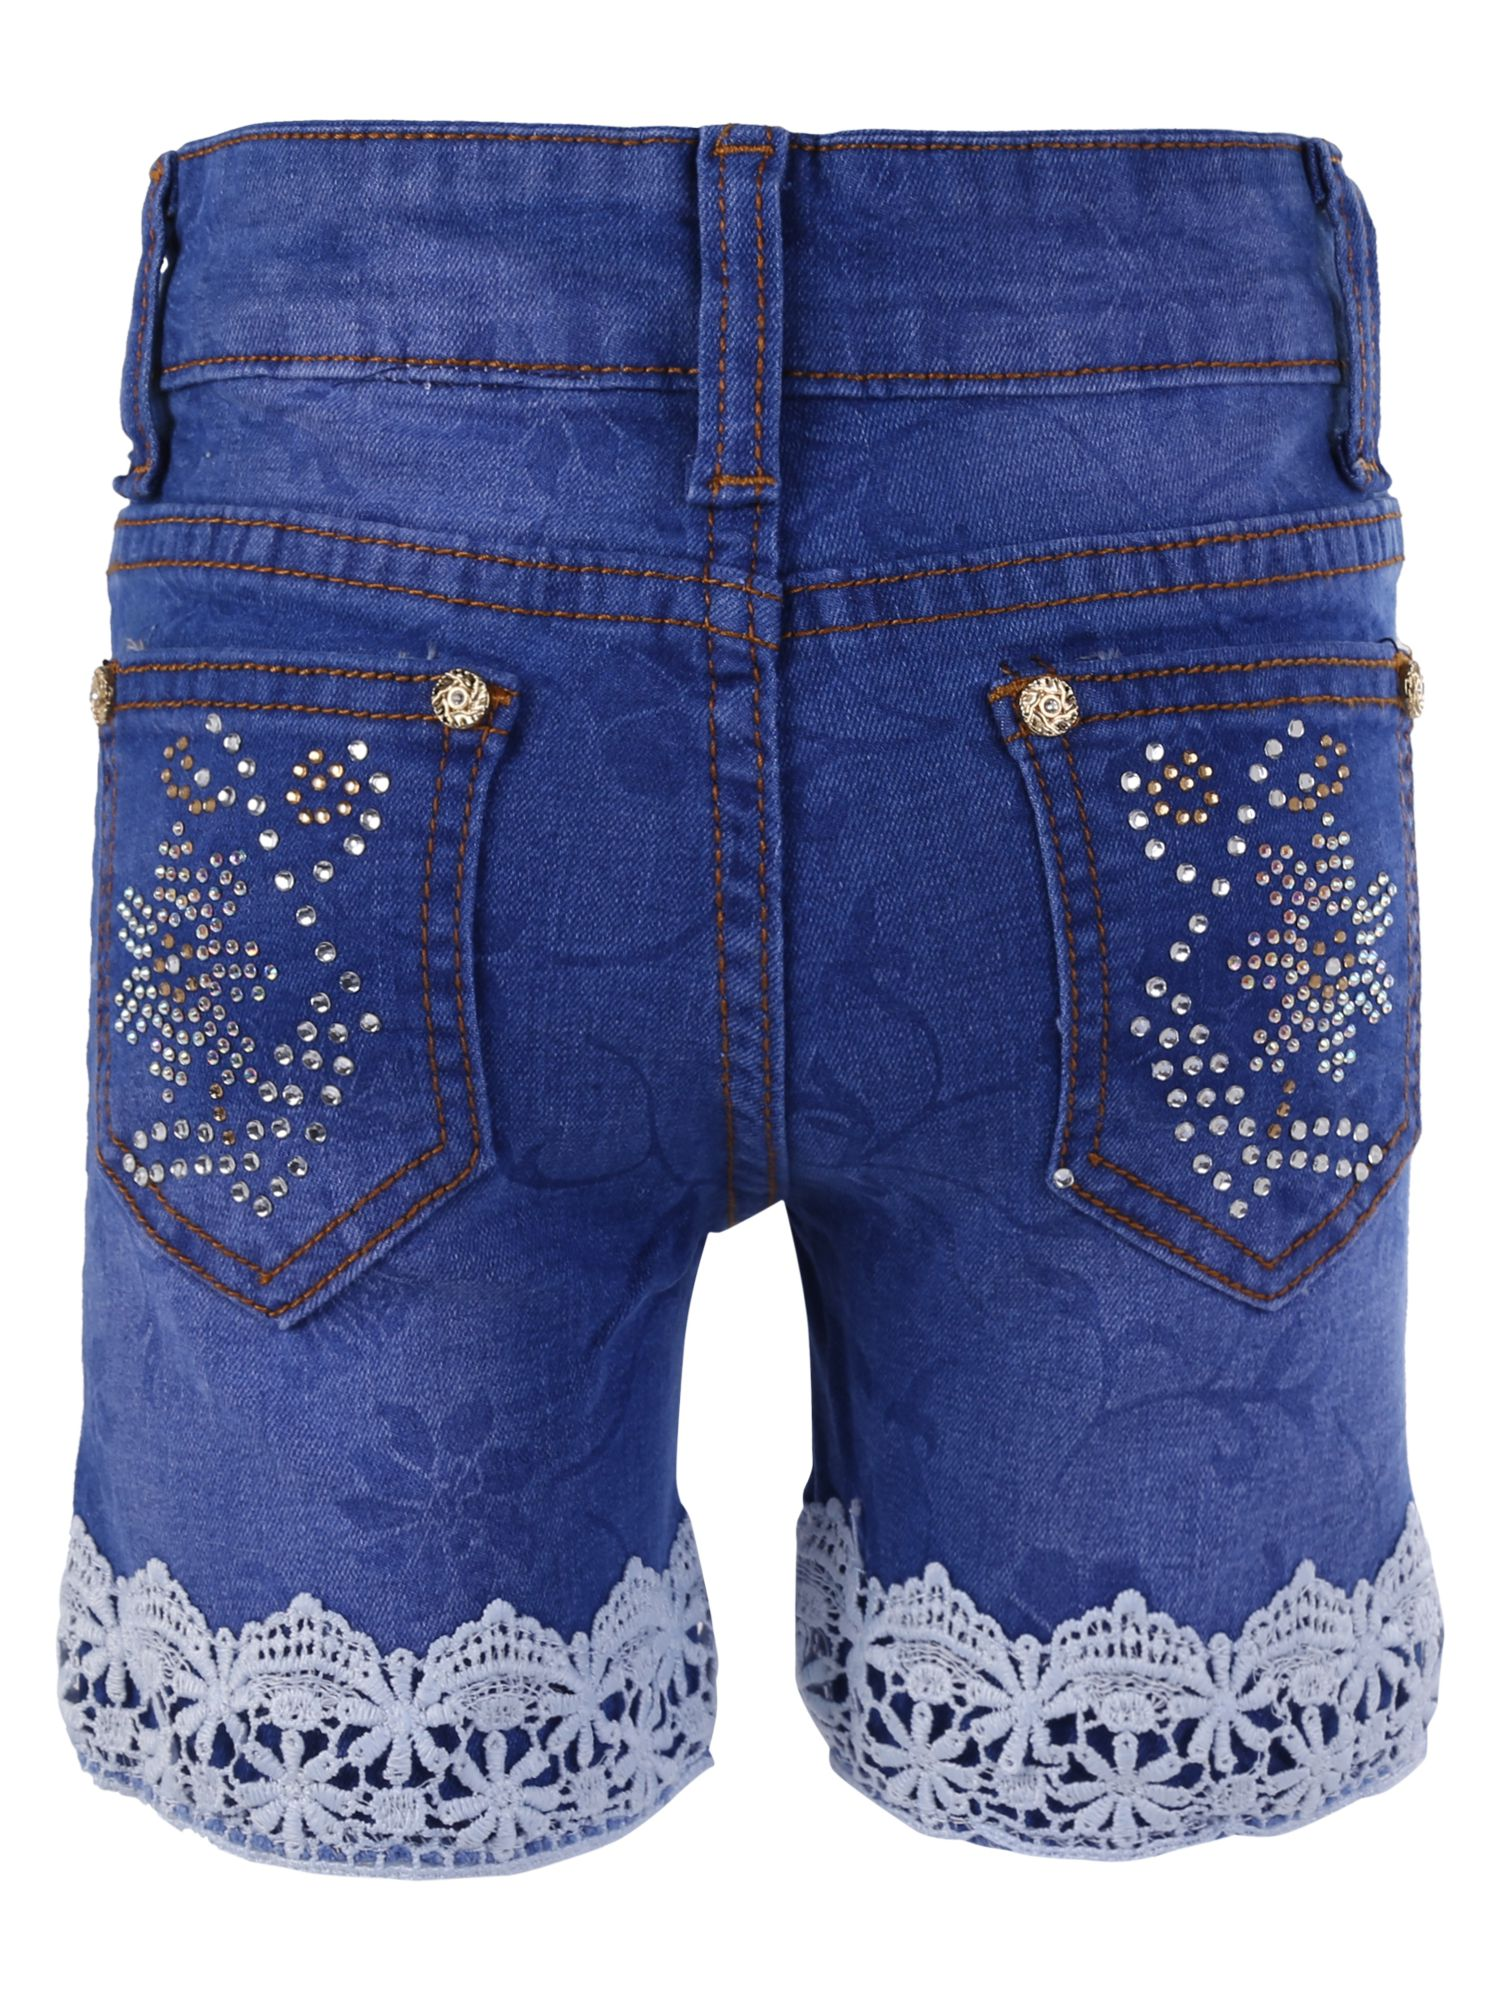 Blisara Girls Blue Denim Embedded Lace Design Short Jeans (Size Suitable for 3 to 4 years)